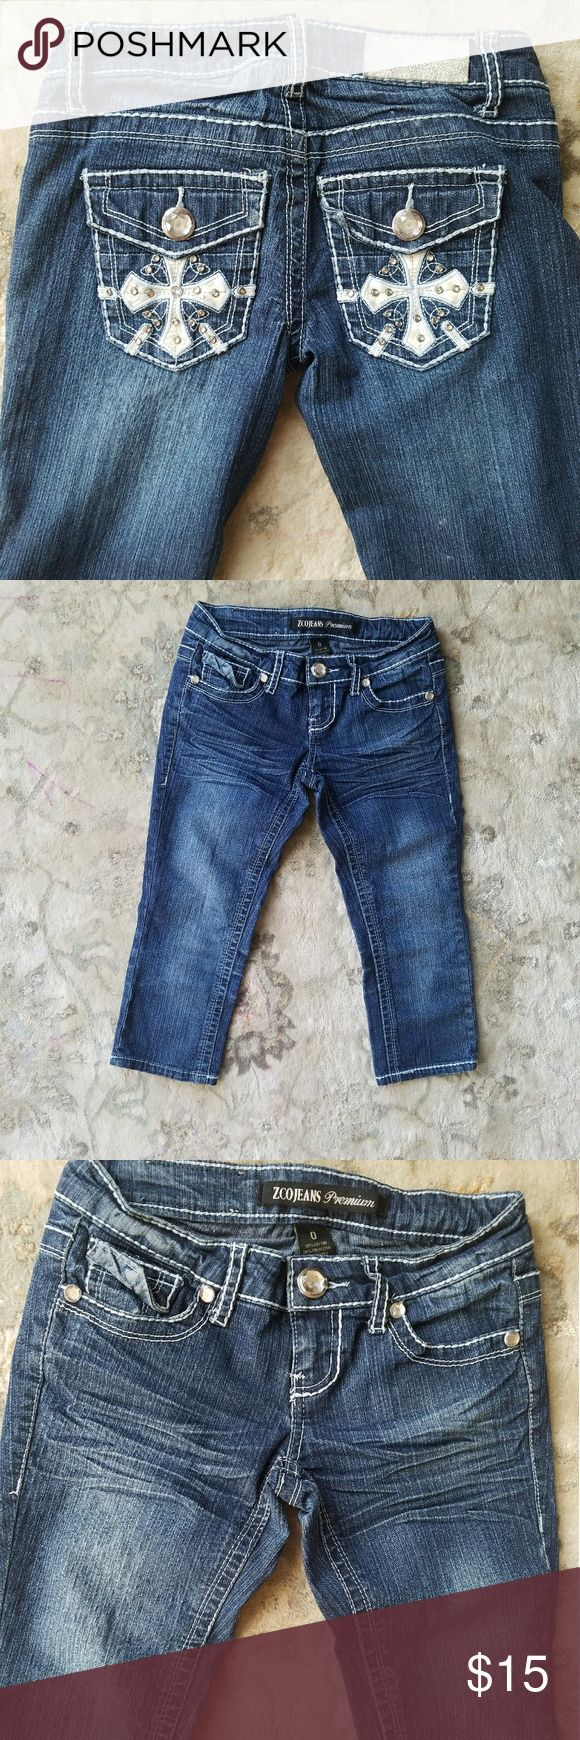 Women's ZCO Jeans premium denim capris 0 Beautiful details on back pockets. ZCO brand. Size 0. No signs of wear.  Not sure if my daughter ever wore them. Discounts on bundles  Feel free to make a reasonable offer ZCO Pants Capris